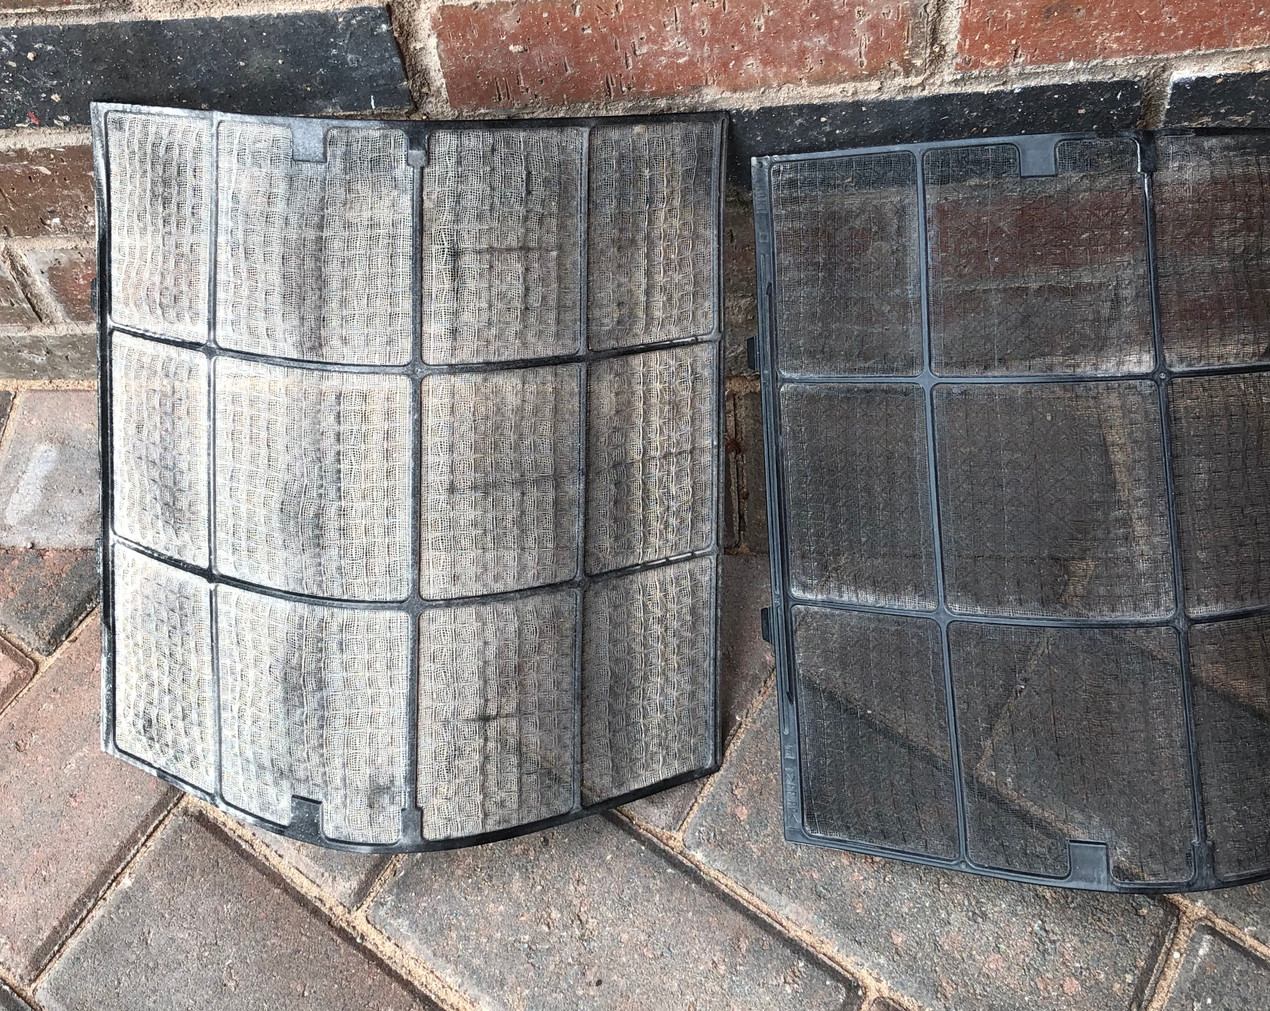 High Wall Air con filters before and after